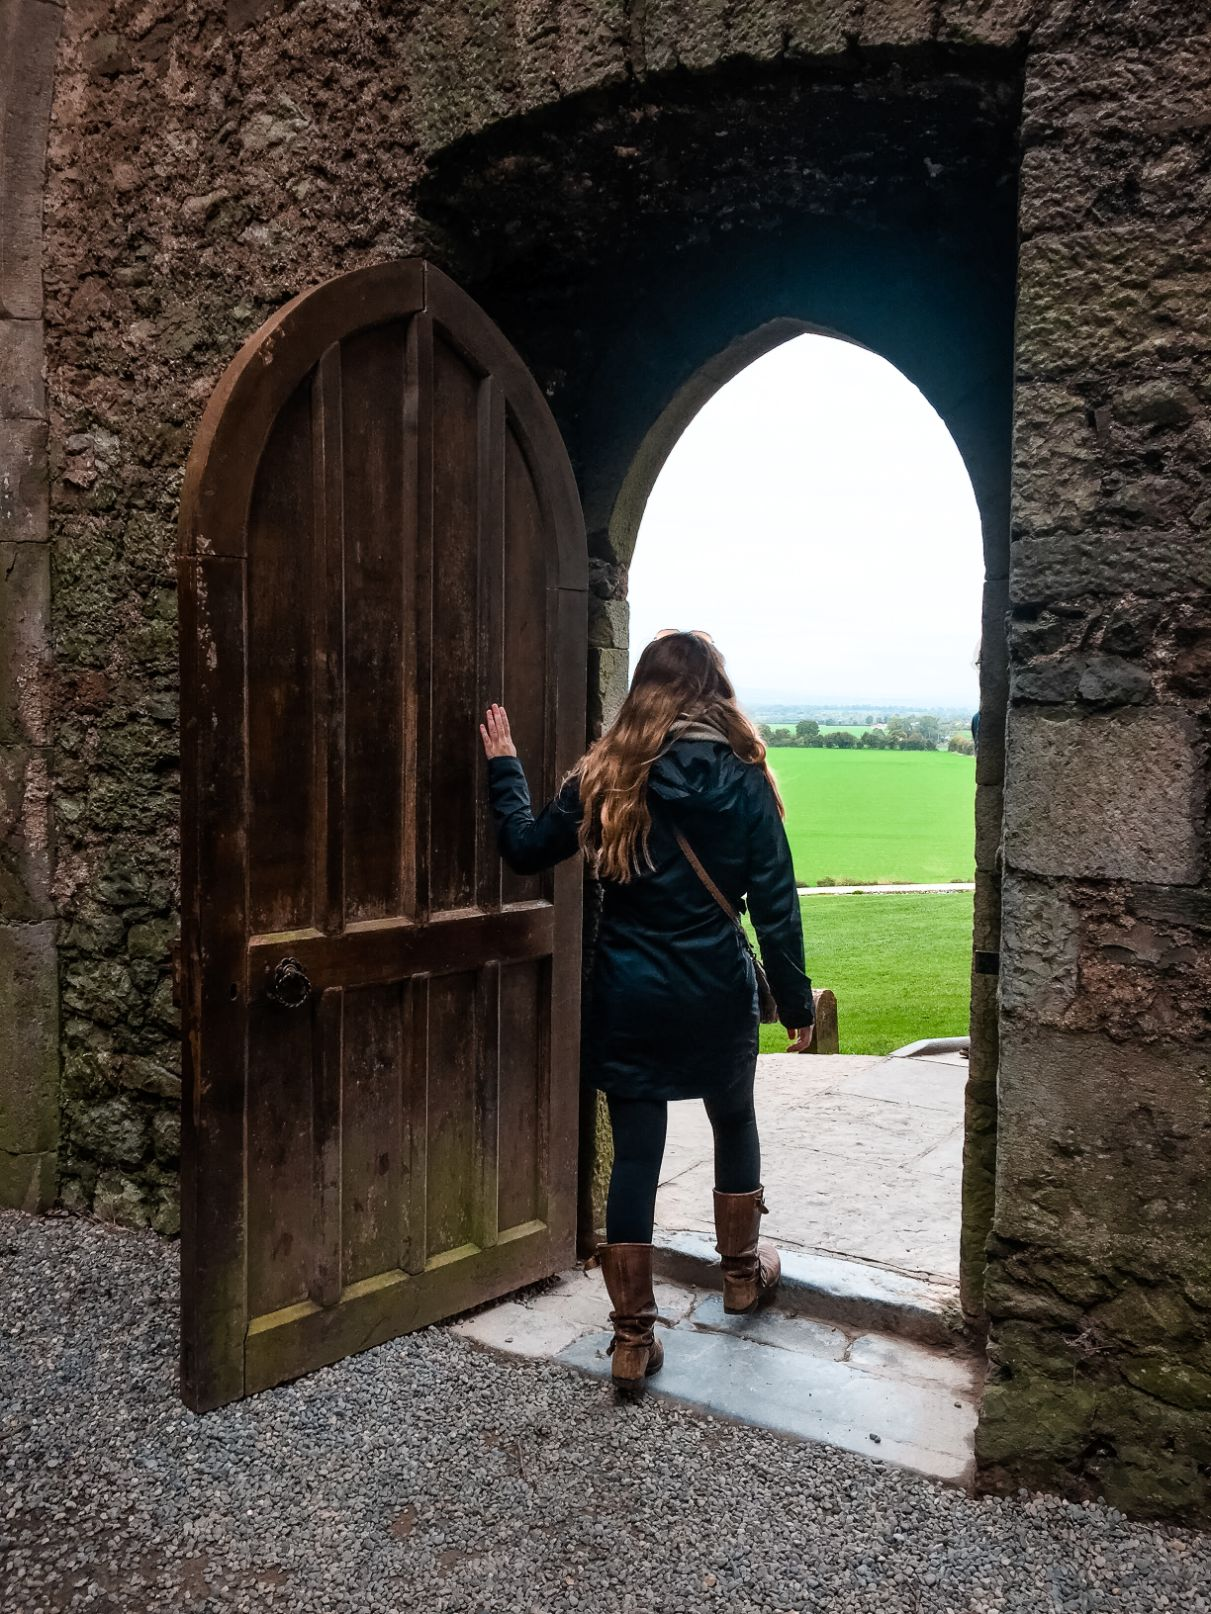 Hannah facing out of wooden doorway towards Irish countryside while visiting Rock of Cashel in Ireland